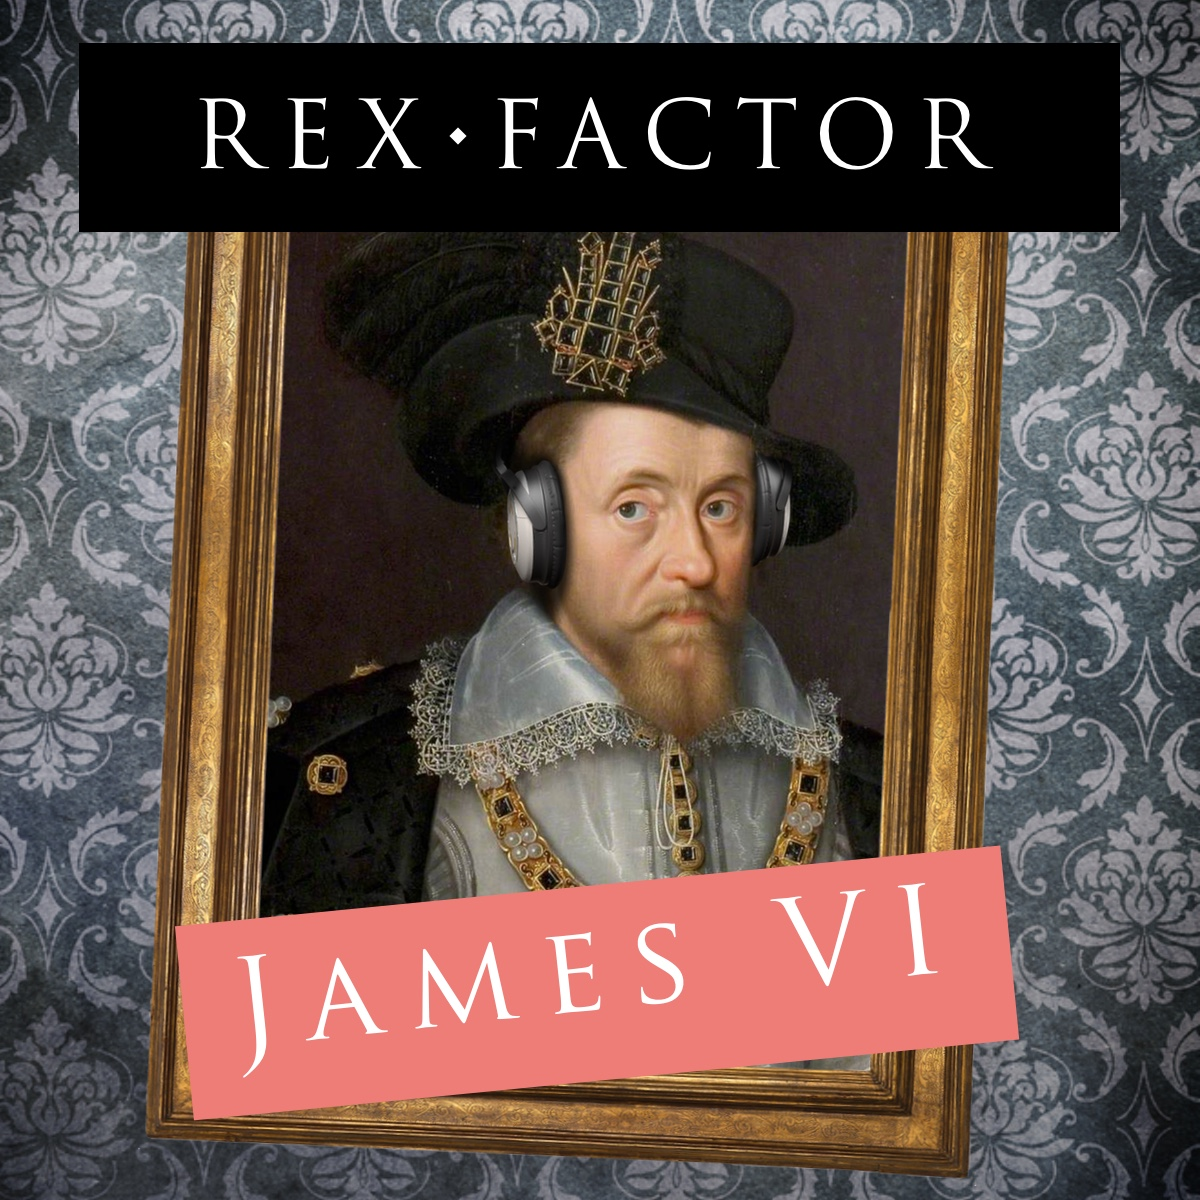 S2.45 James VI (I of England)